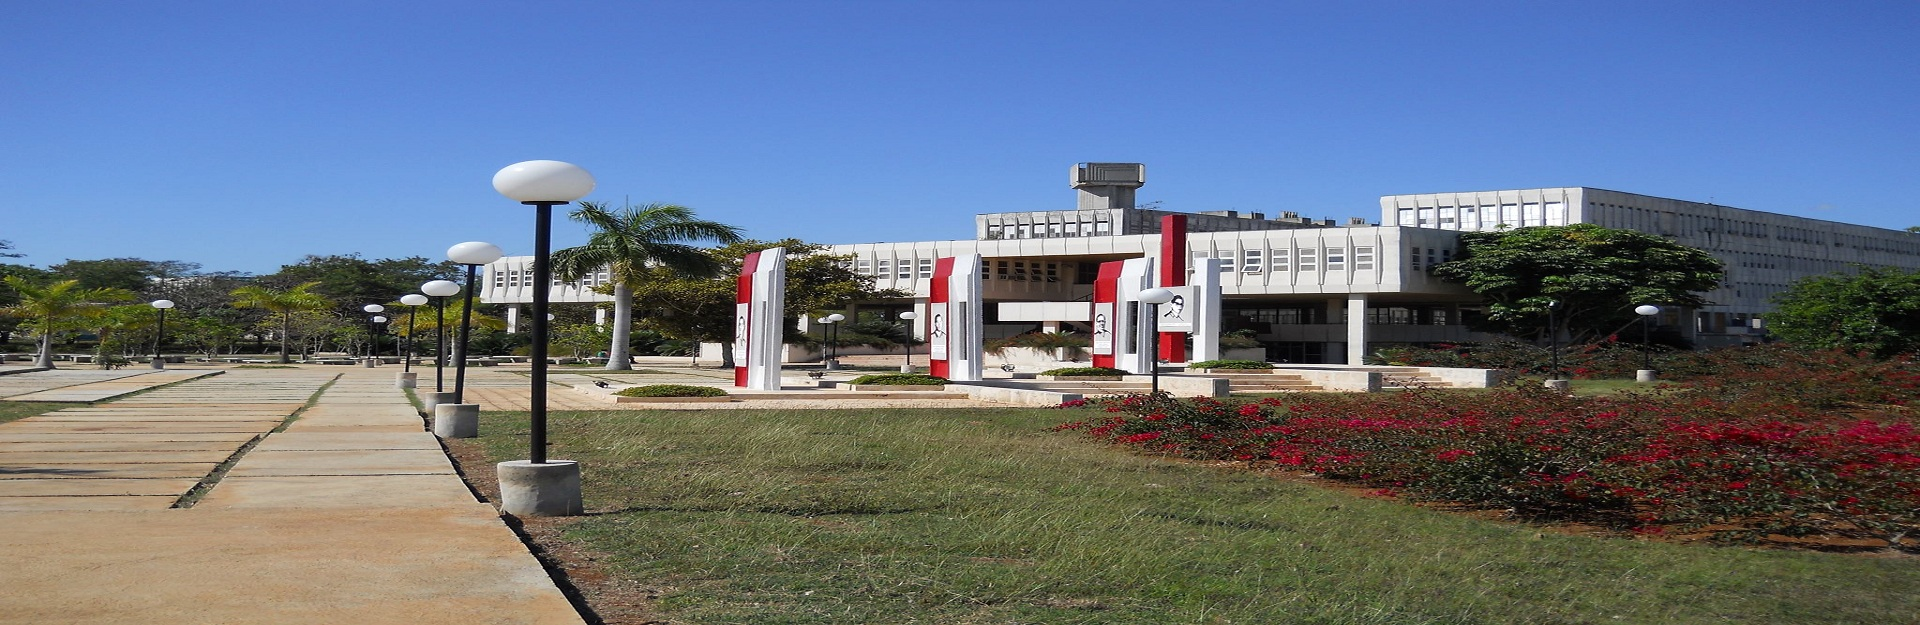 Universidad Agraria, Mayabeque, Cuba Travel